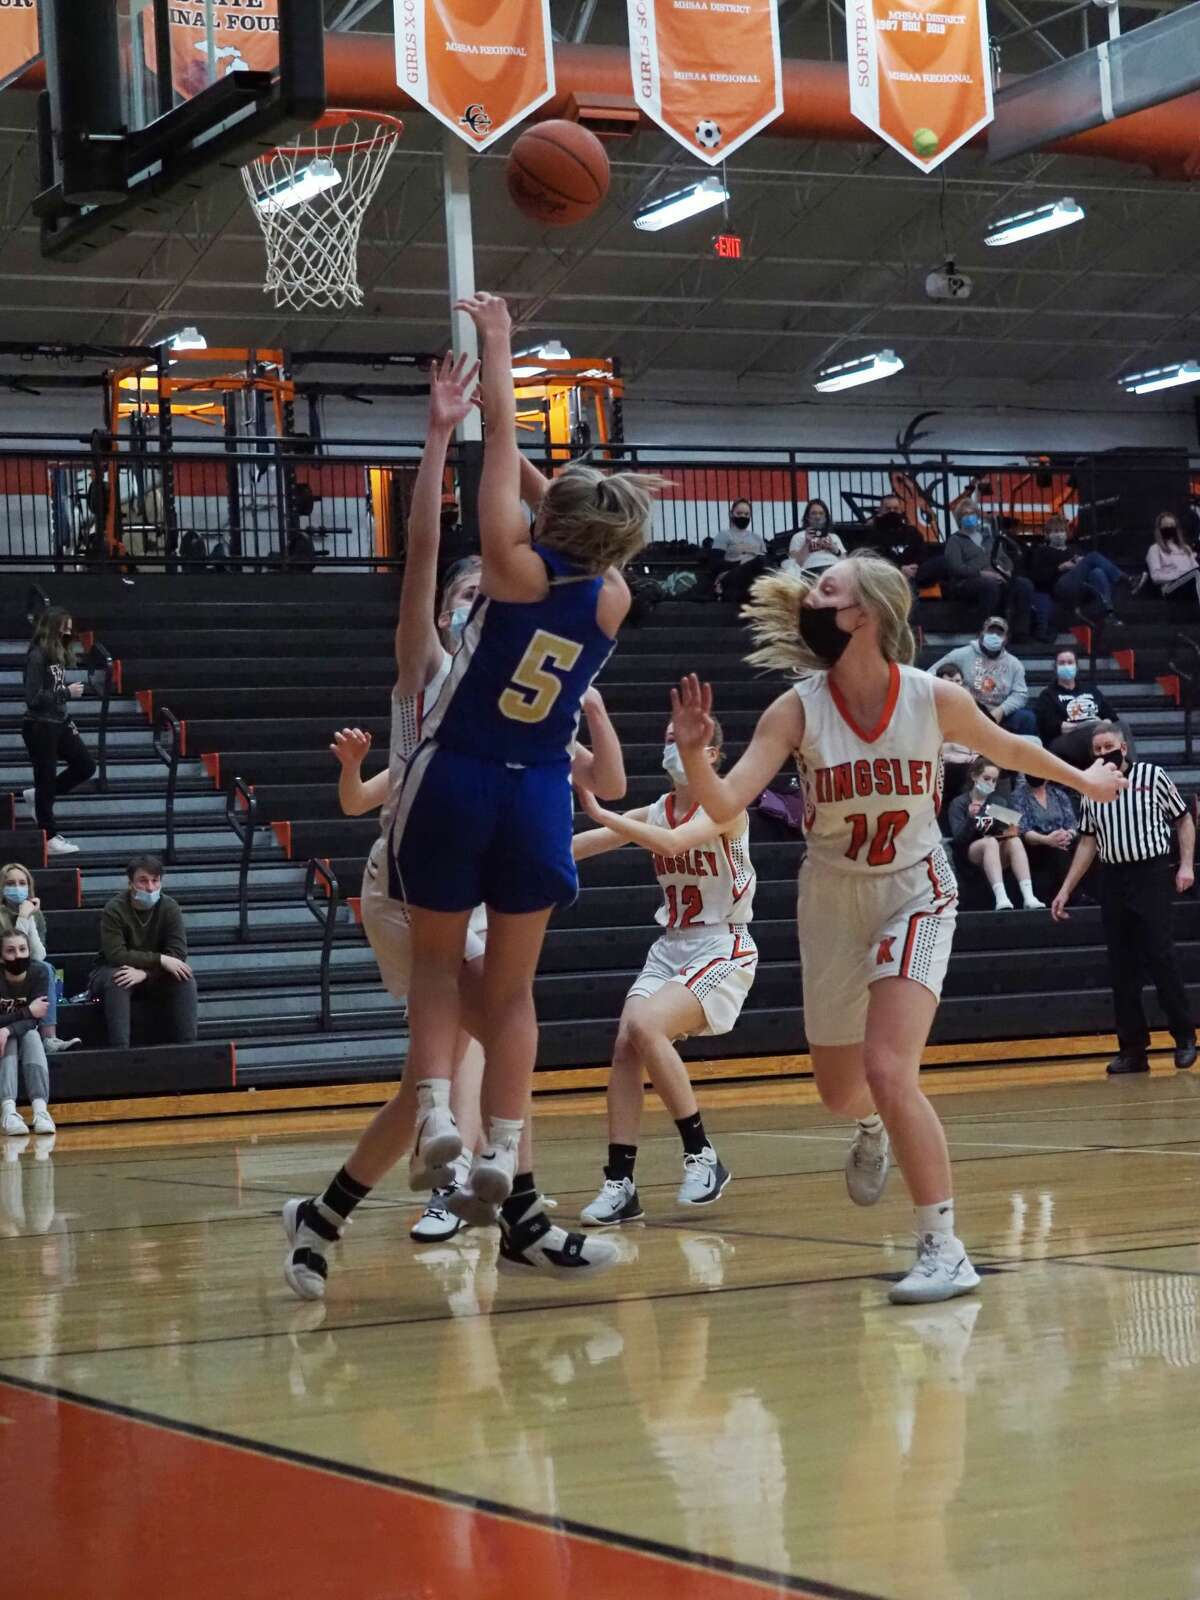 The Onekama girls basketball team fell to Kingsley on the road on Thursday, March 18.